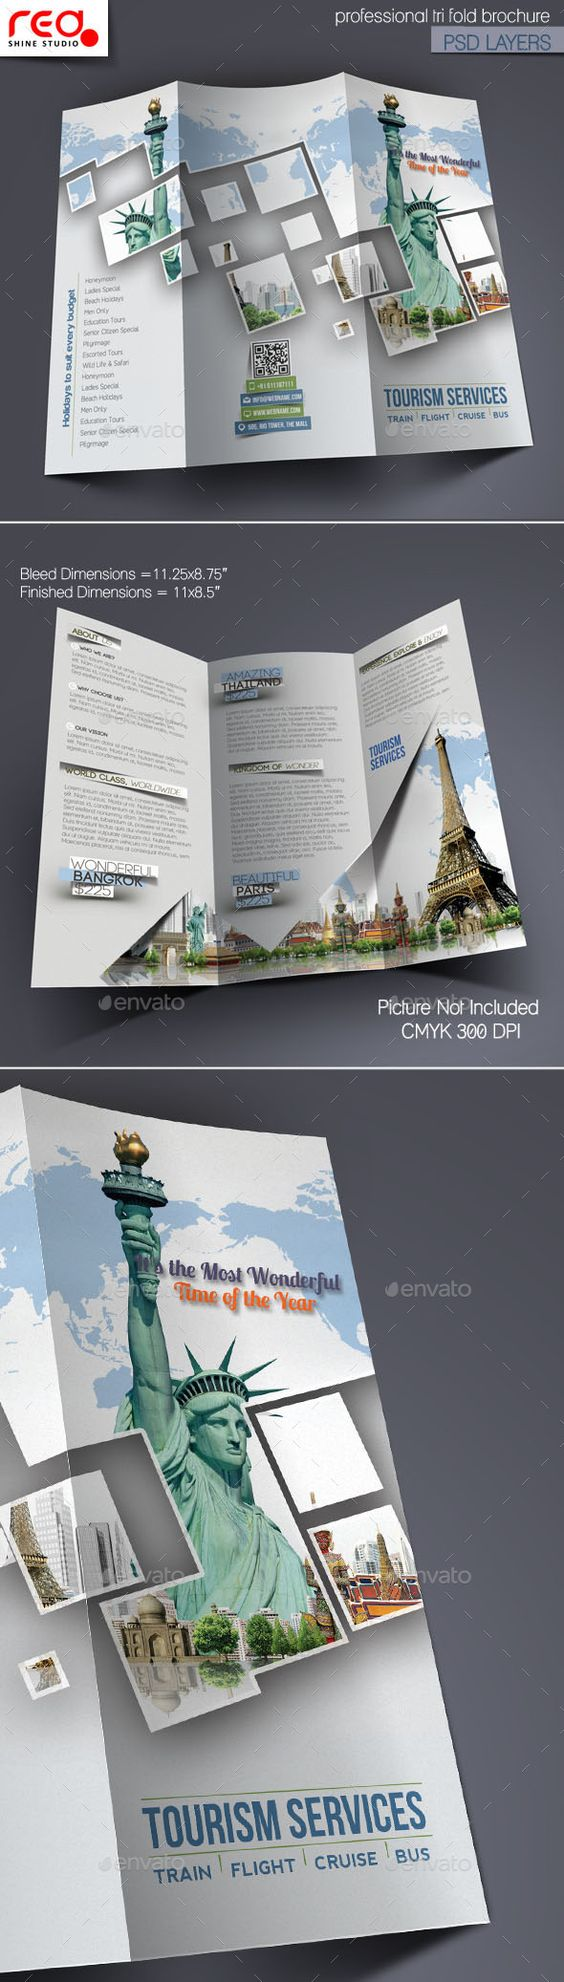 tourism brochure template - brochure ideas advertising and tropical on pinterest